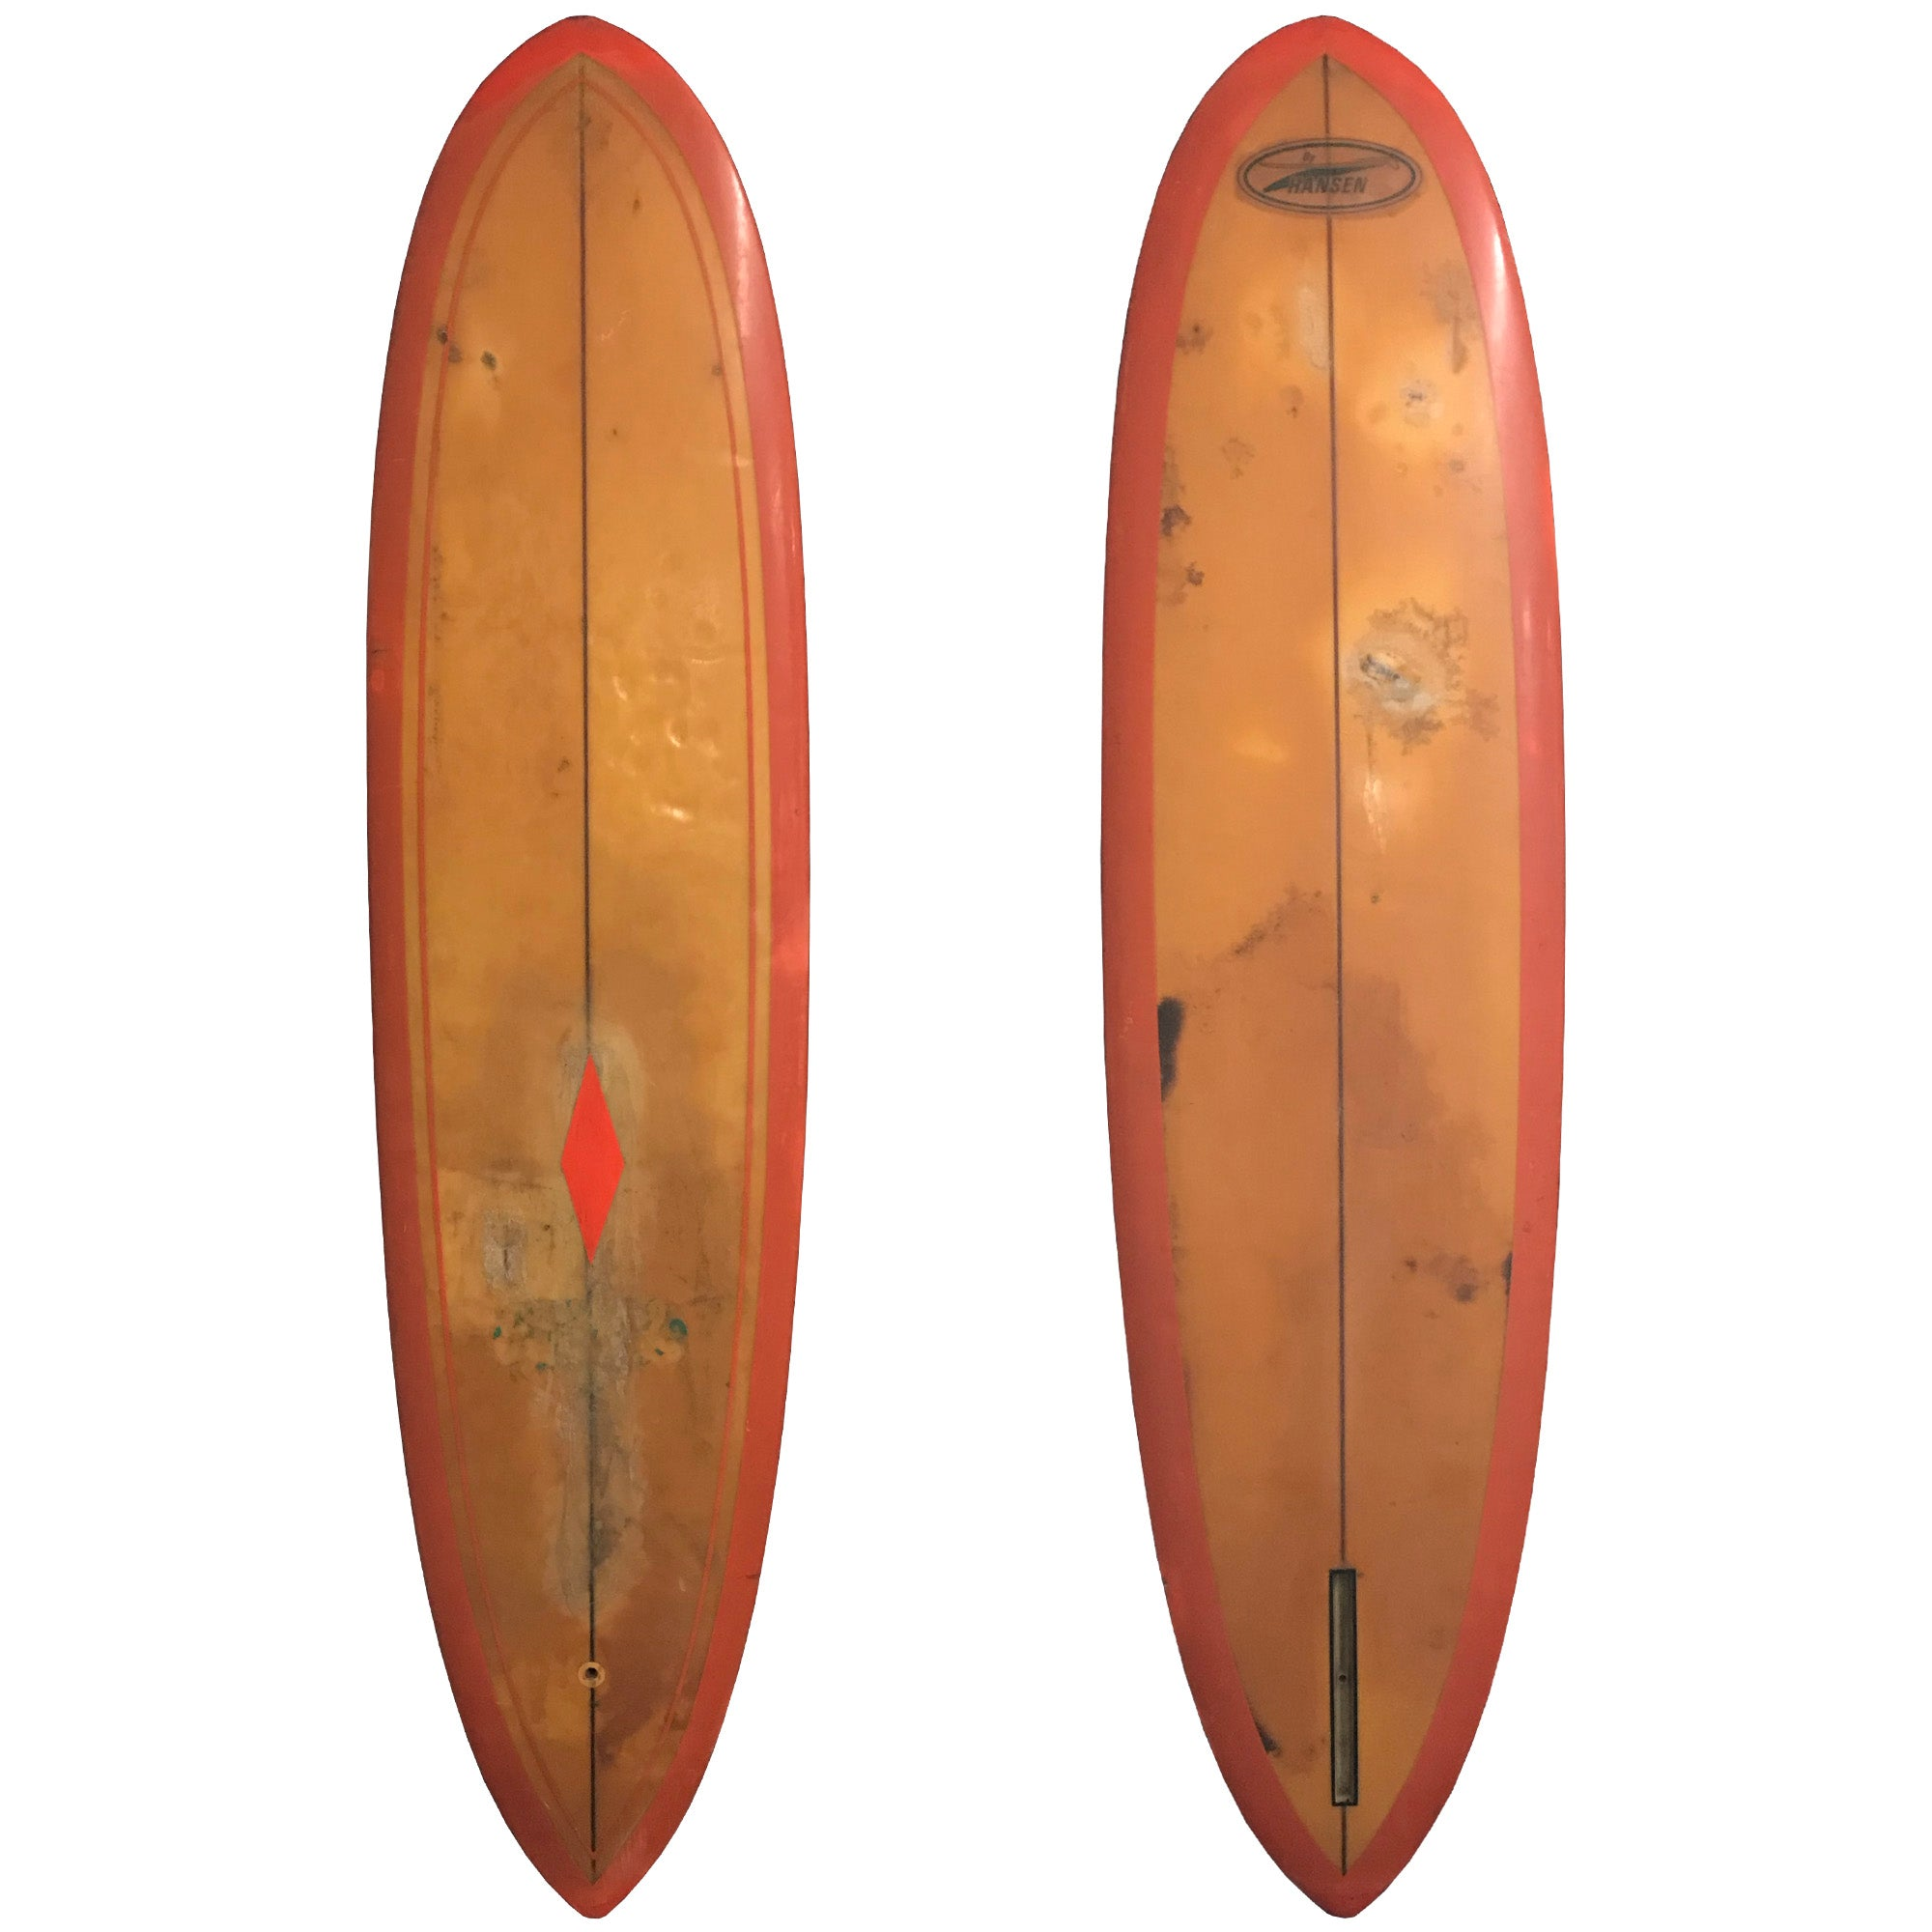 Surfboards by Hansen 7' Collector's Surfboard